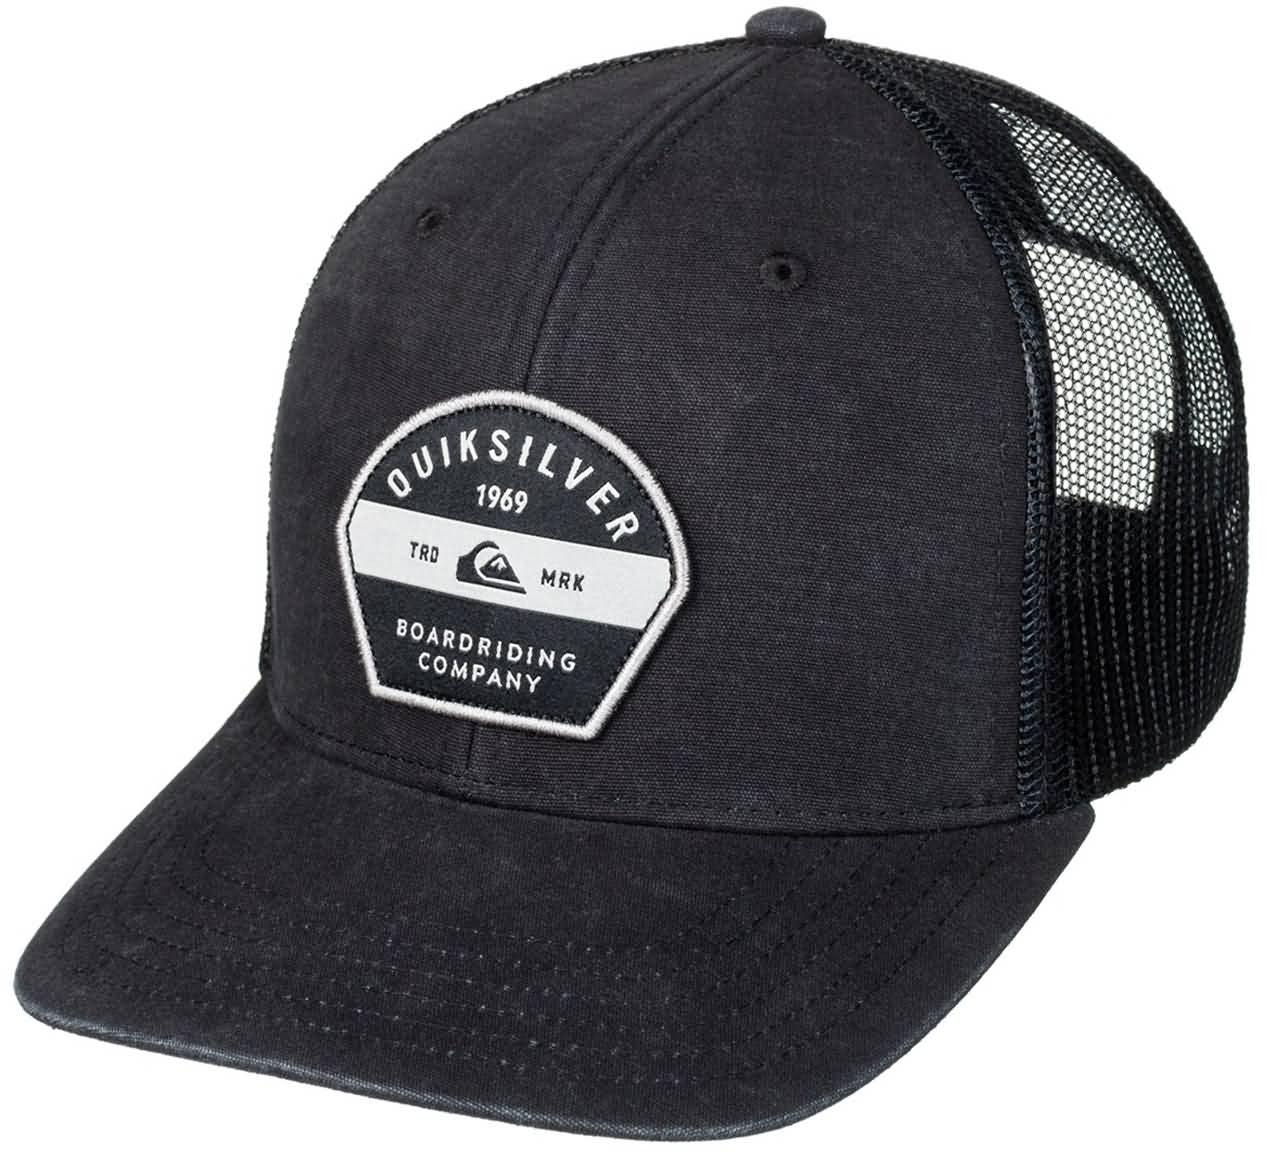 Quiksilver Surf Fall 2017 Headwear | Beach Lifestyle Hats Preview